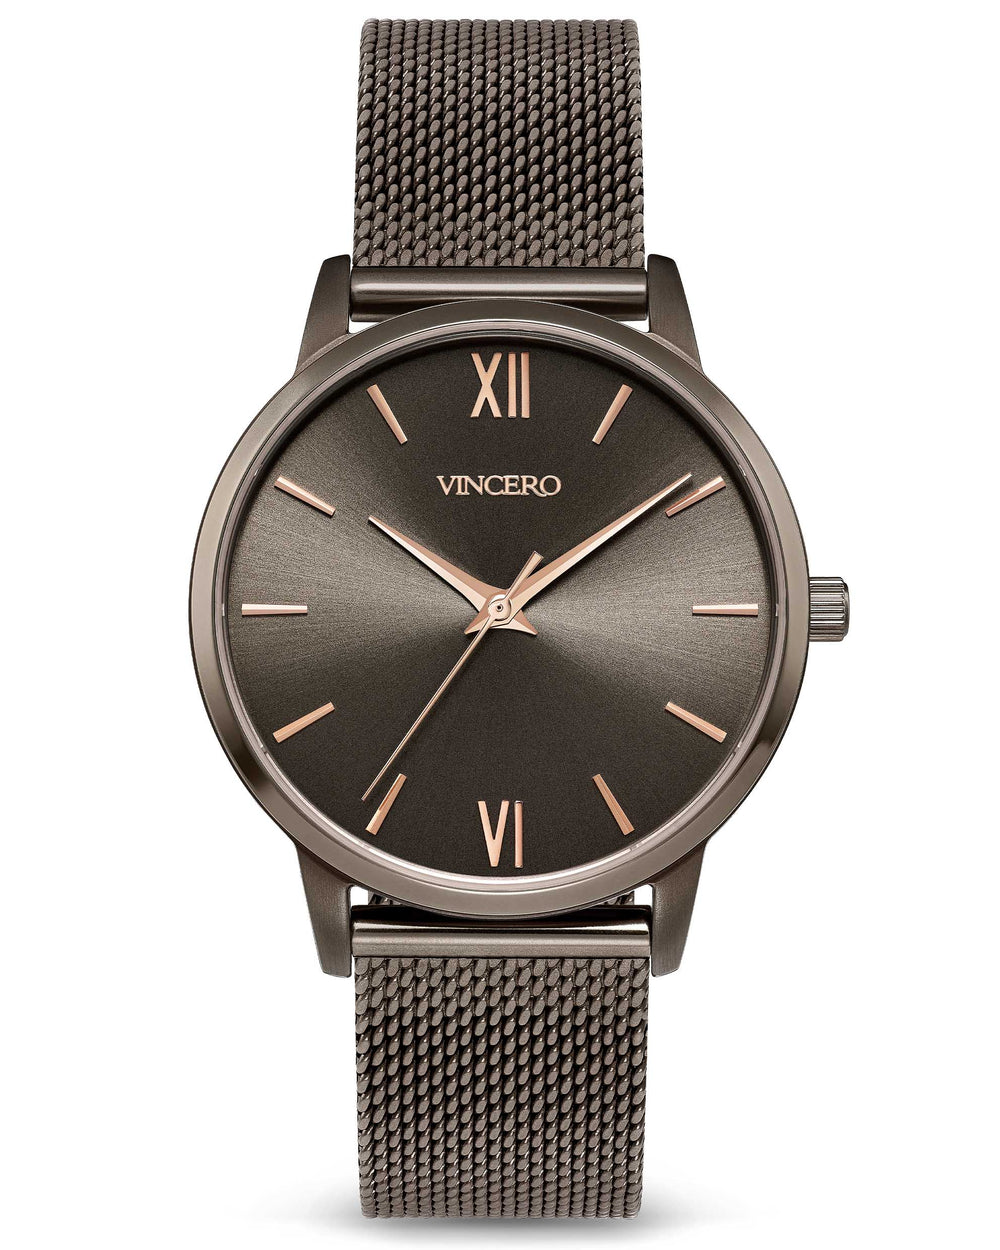 The Eros 33mm Dark Khaki 316L Stainless Steel Mesh Strap Dark Khaki Watch Face Dark Khaki Case Clasp Rose Gold Accents